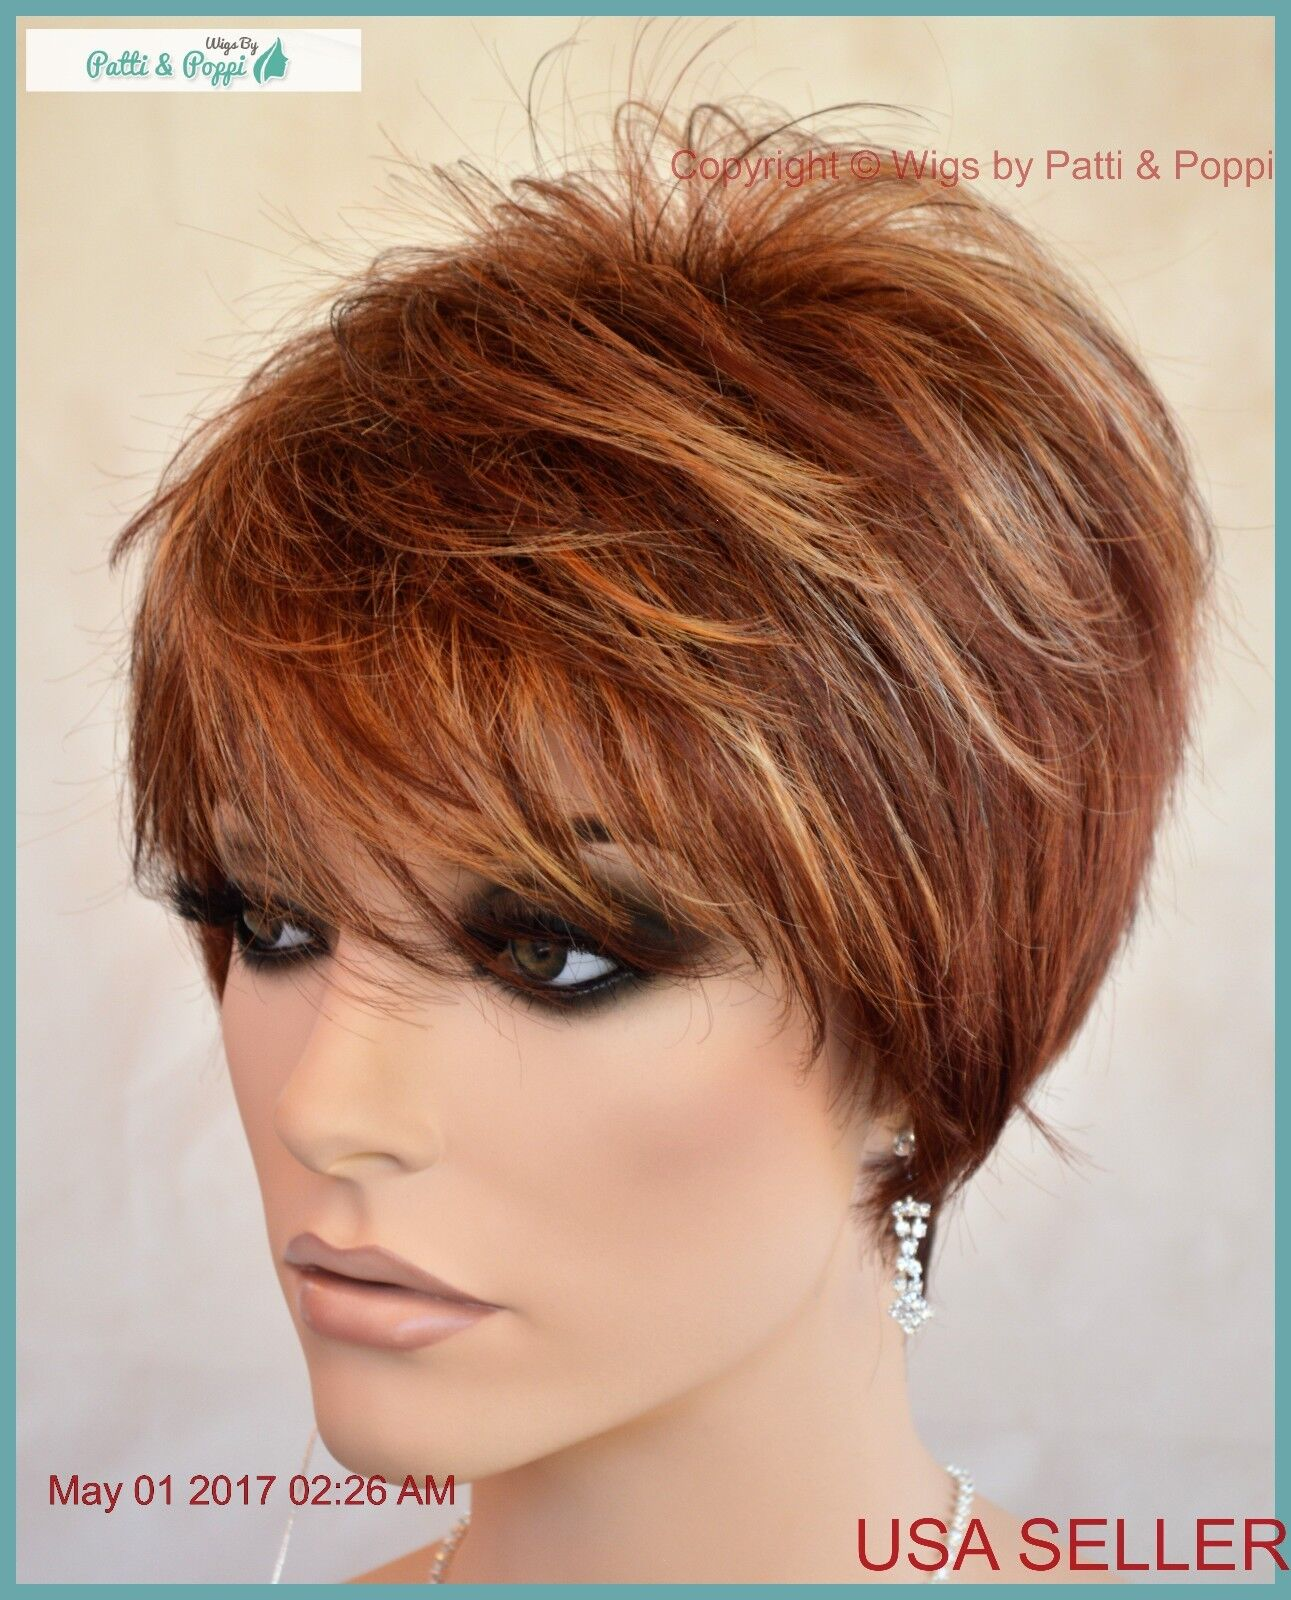 Synthetic Short Hair Wig For Women Color Flame Cute Style 1188 Ebay